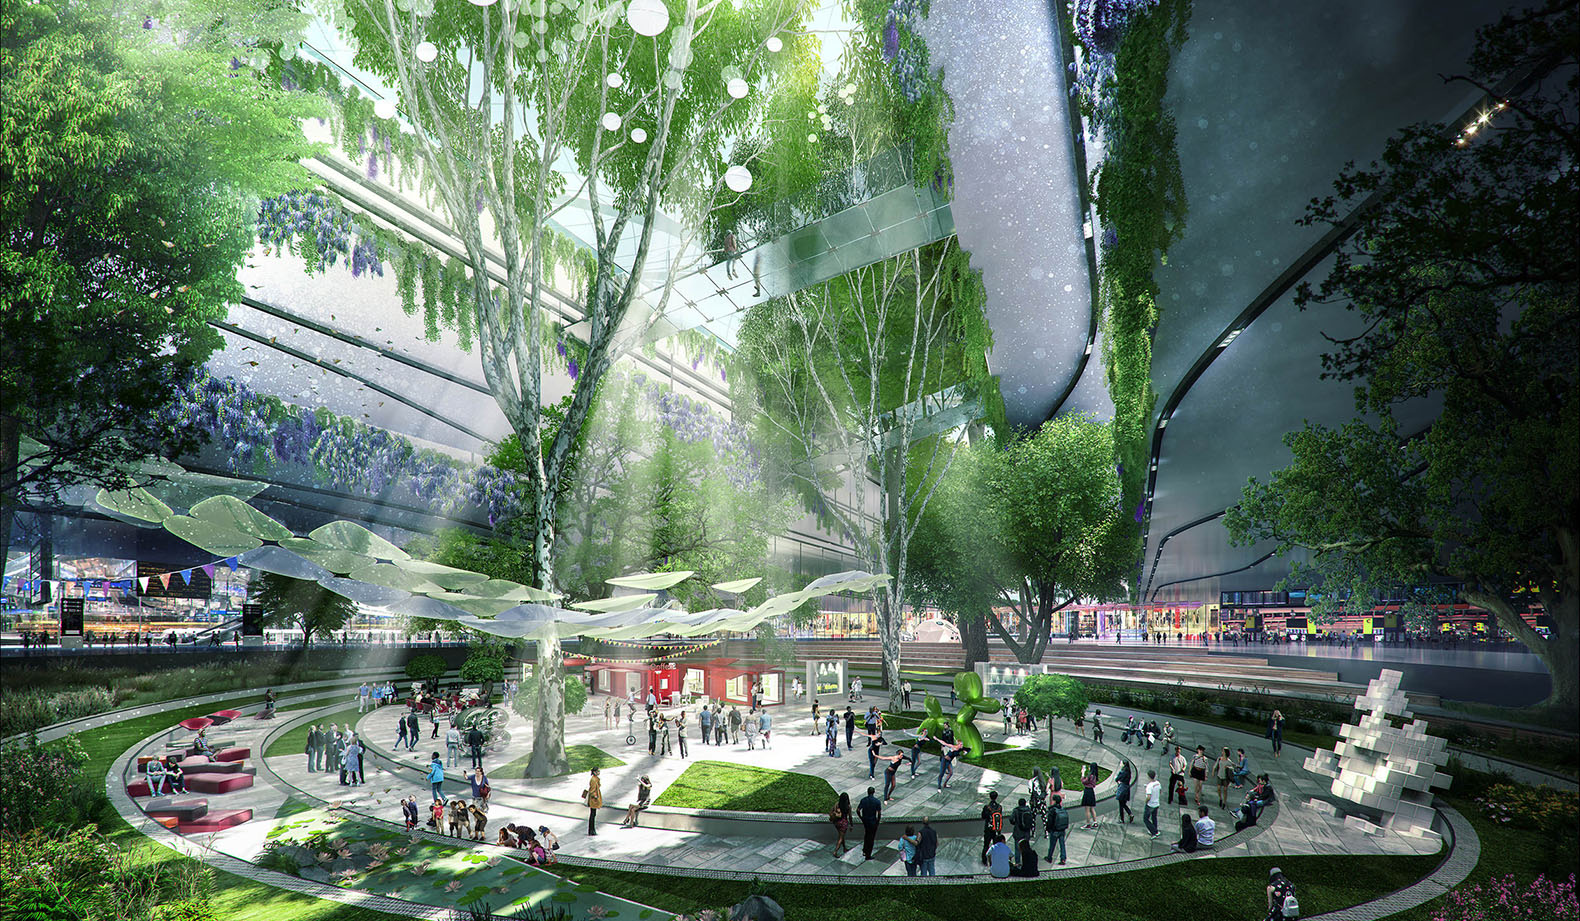 Exciting new designs for Heathrow Airport's expansion unveiled